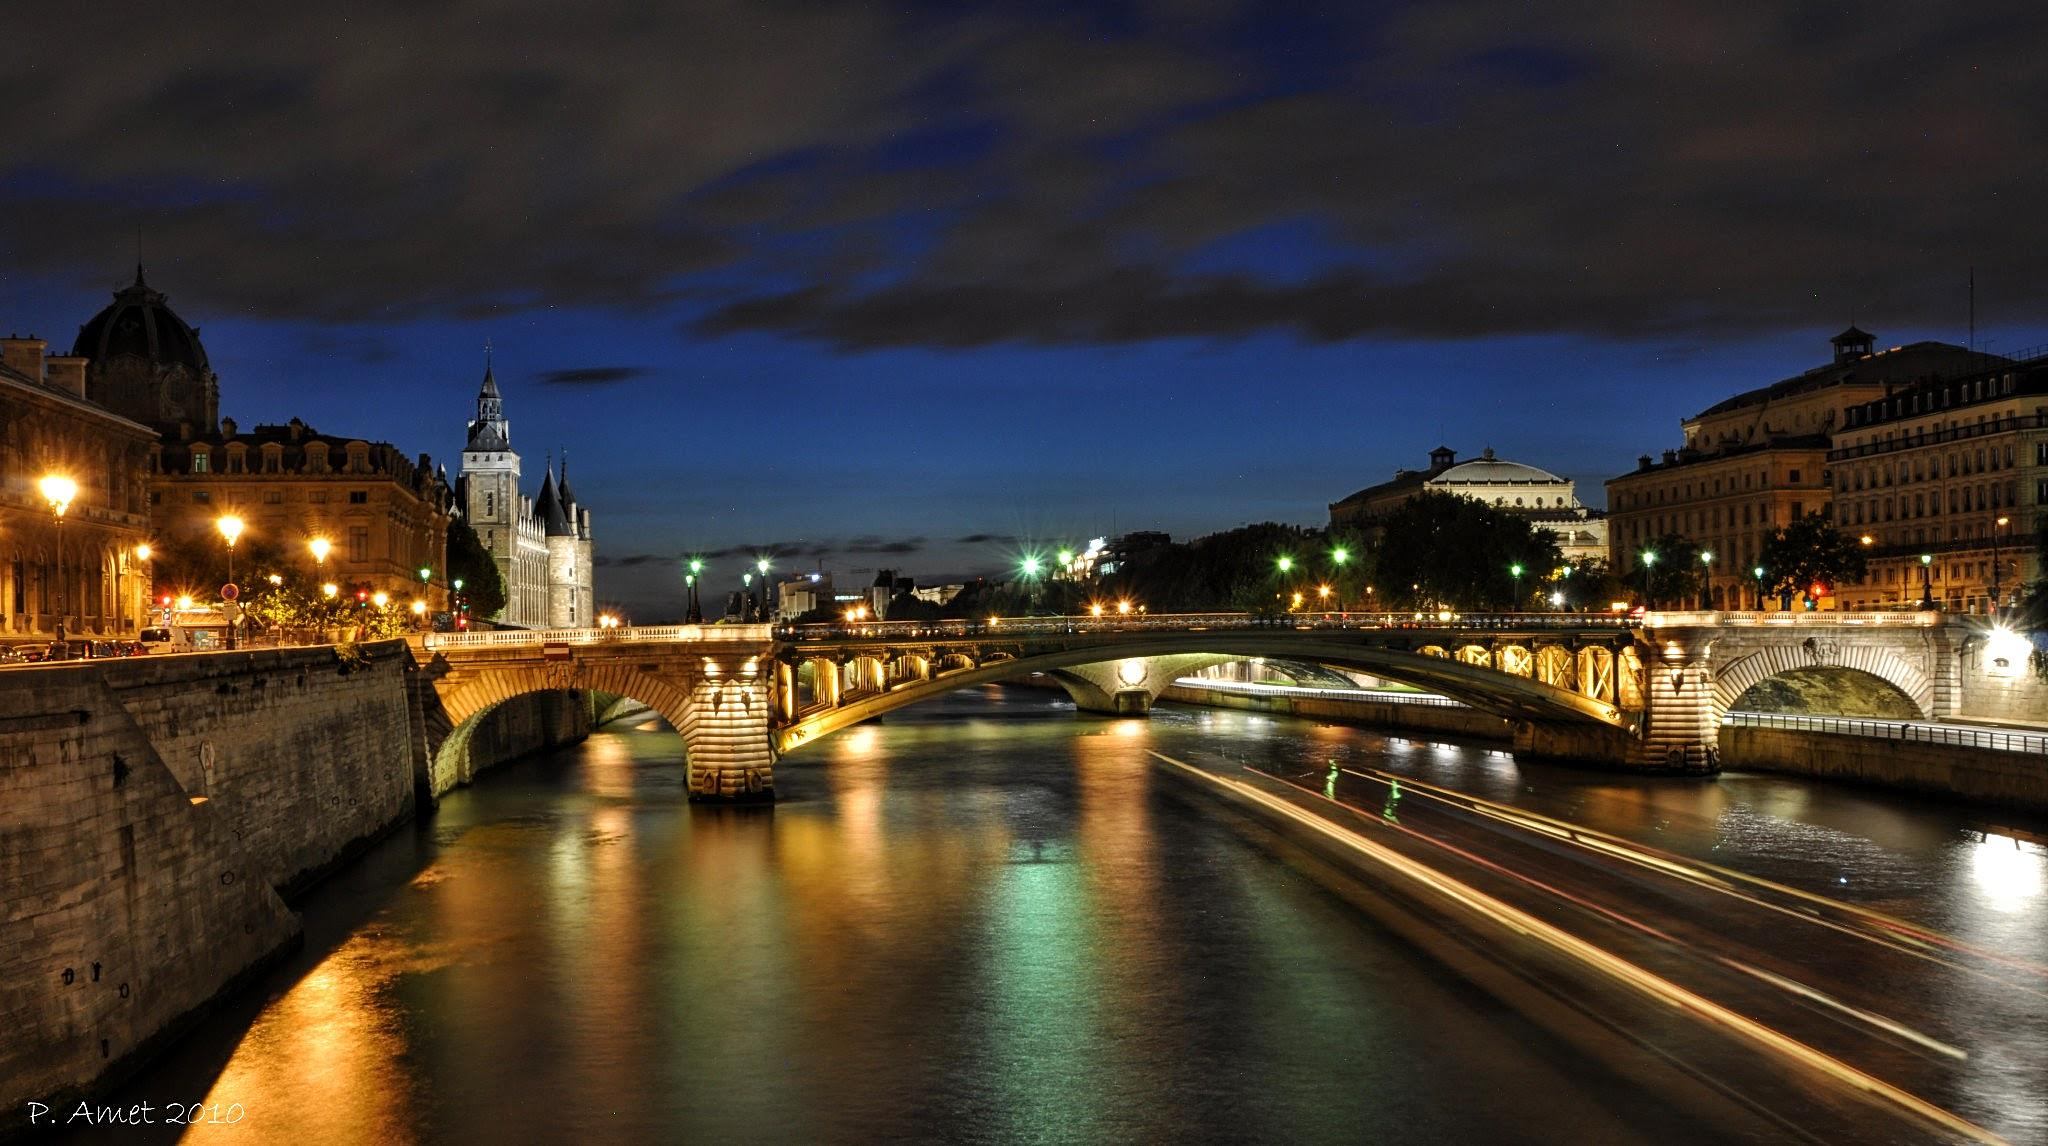 Pont Notre Dame by Patrick Lethorois